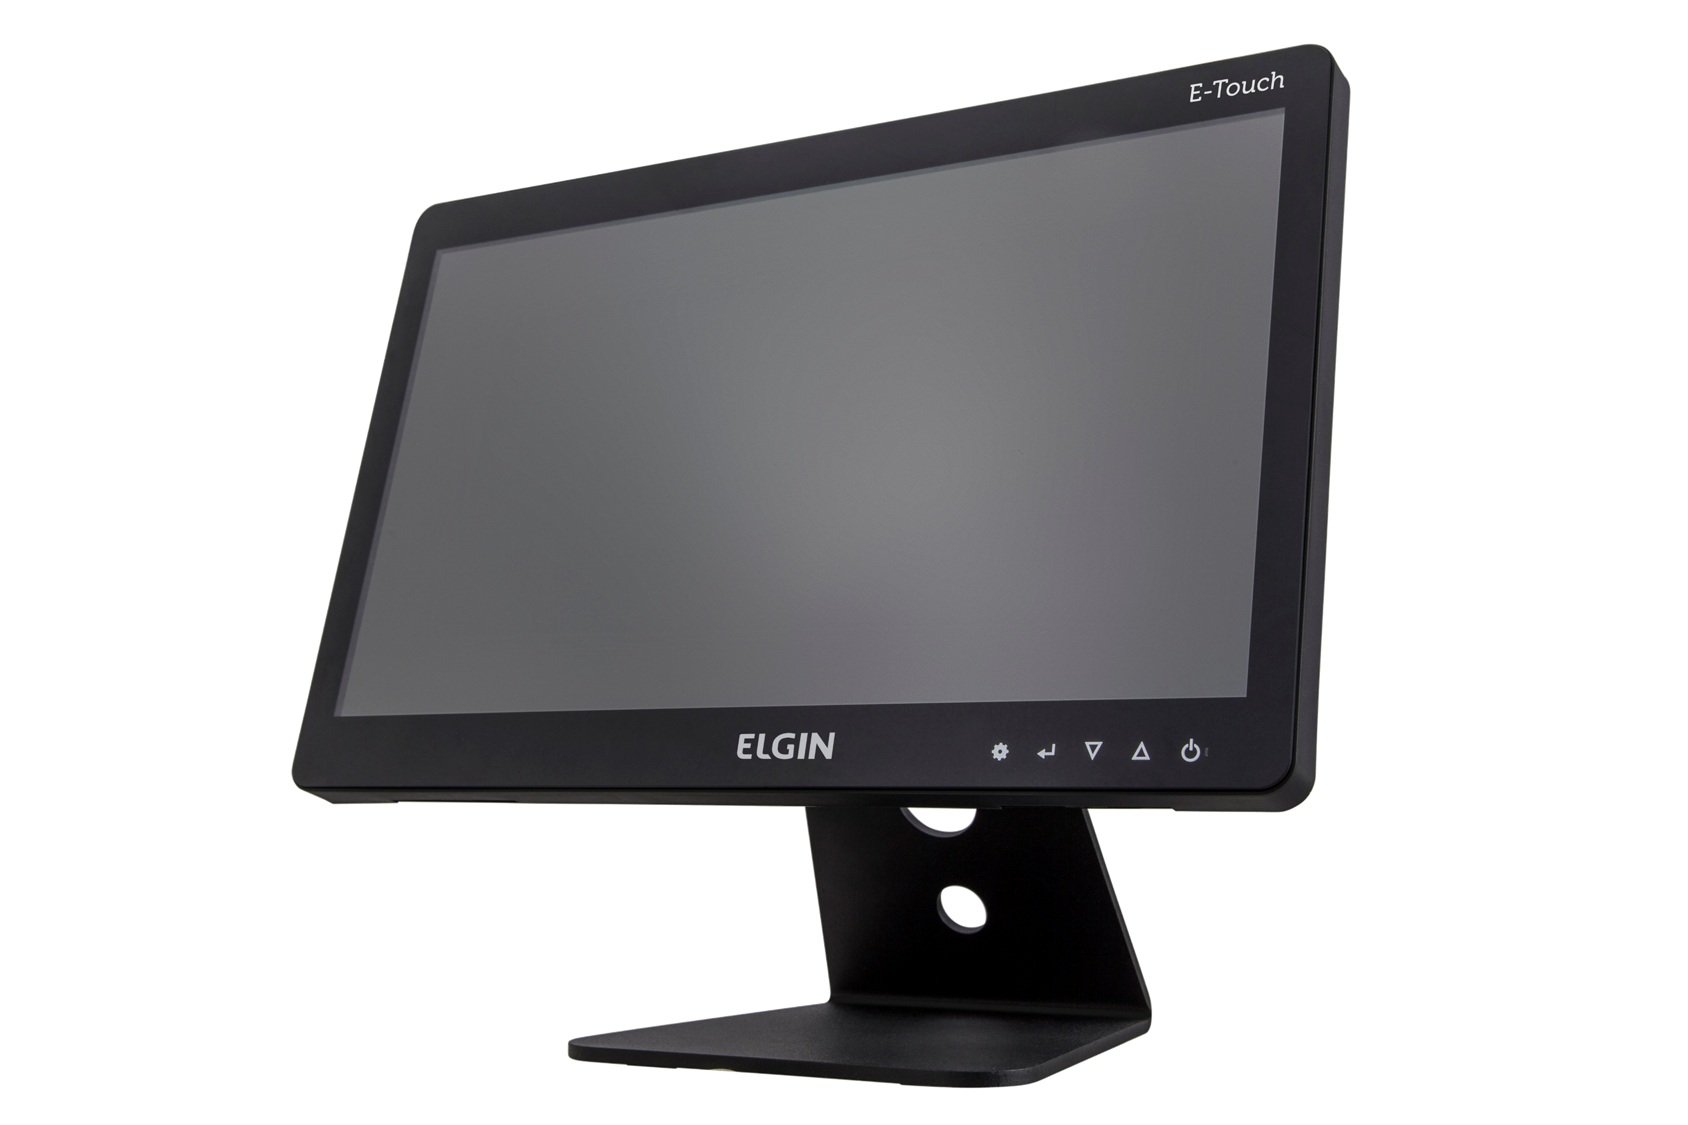 MONITOR E-TOUCH CAPACITIVO 15.6